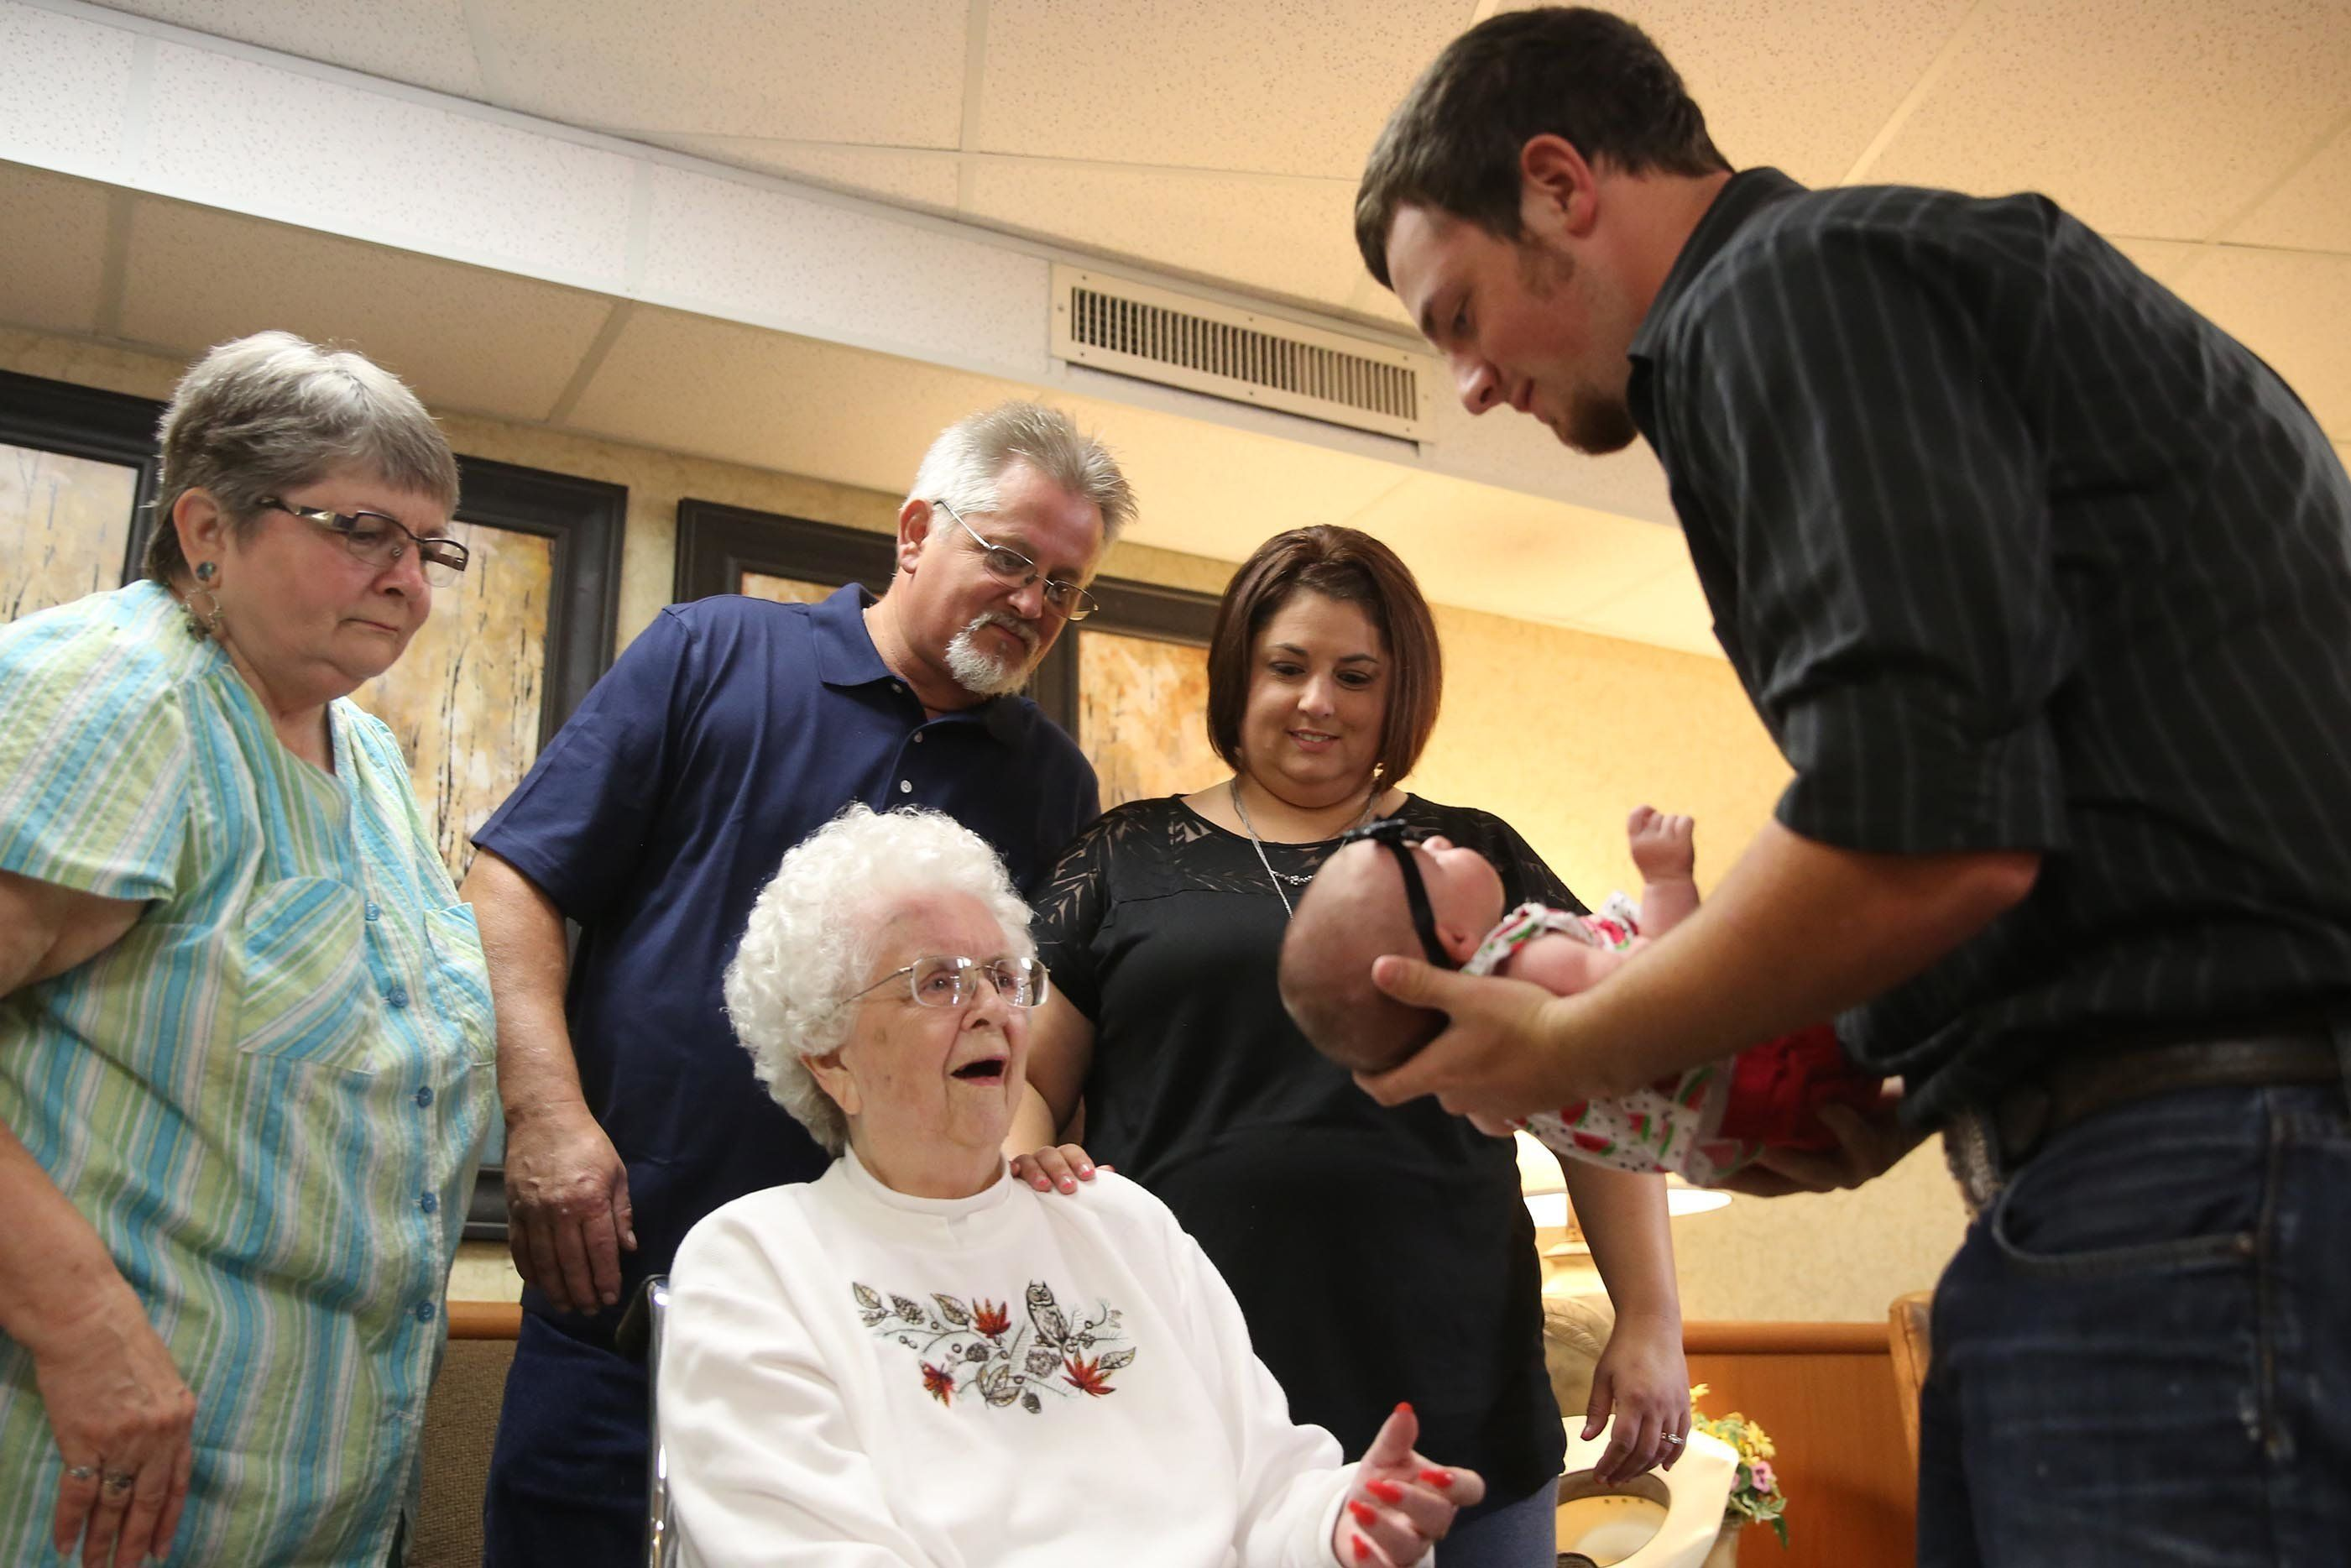 See The Precious Moment A 97-Year-Old Met Her Great-Great ...